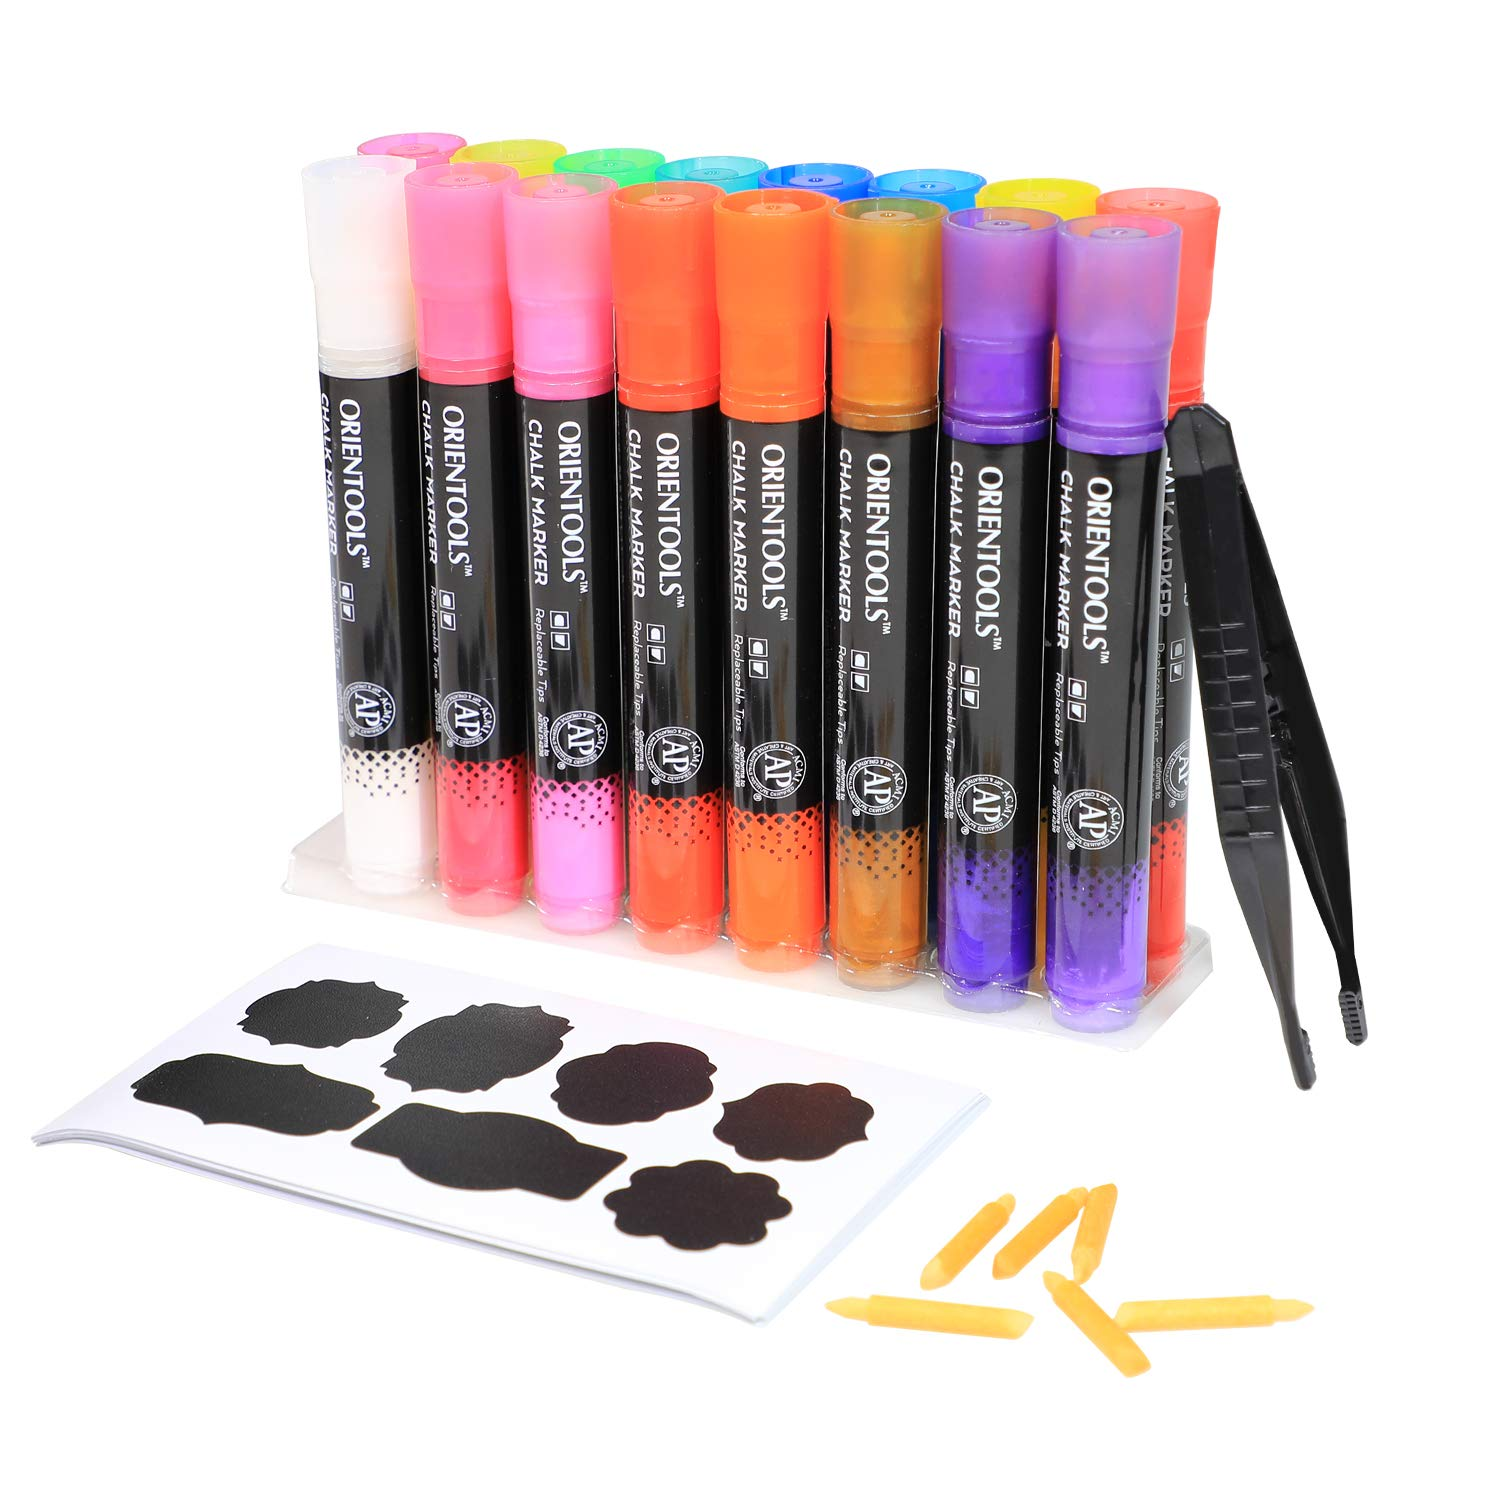 Liquid Chalk Markers for Chalkboard and Multi Surface Use, 16 Pack Window Marker Chalk Pens with 16 Replaceable Chisel Tips (16 Bright Colors, 1 pc Tweezers, 50 Labels, 2 Sticky Stencils)